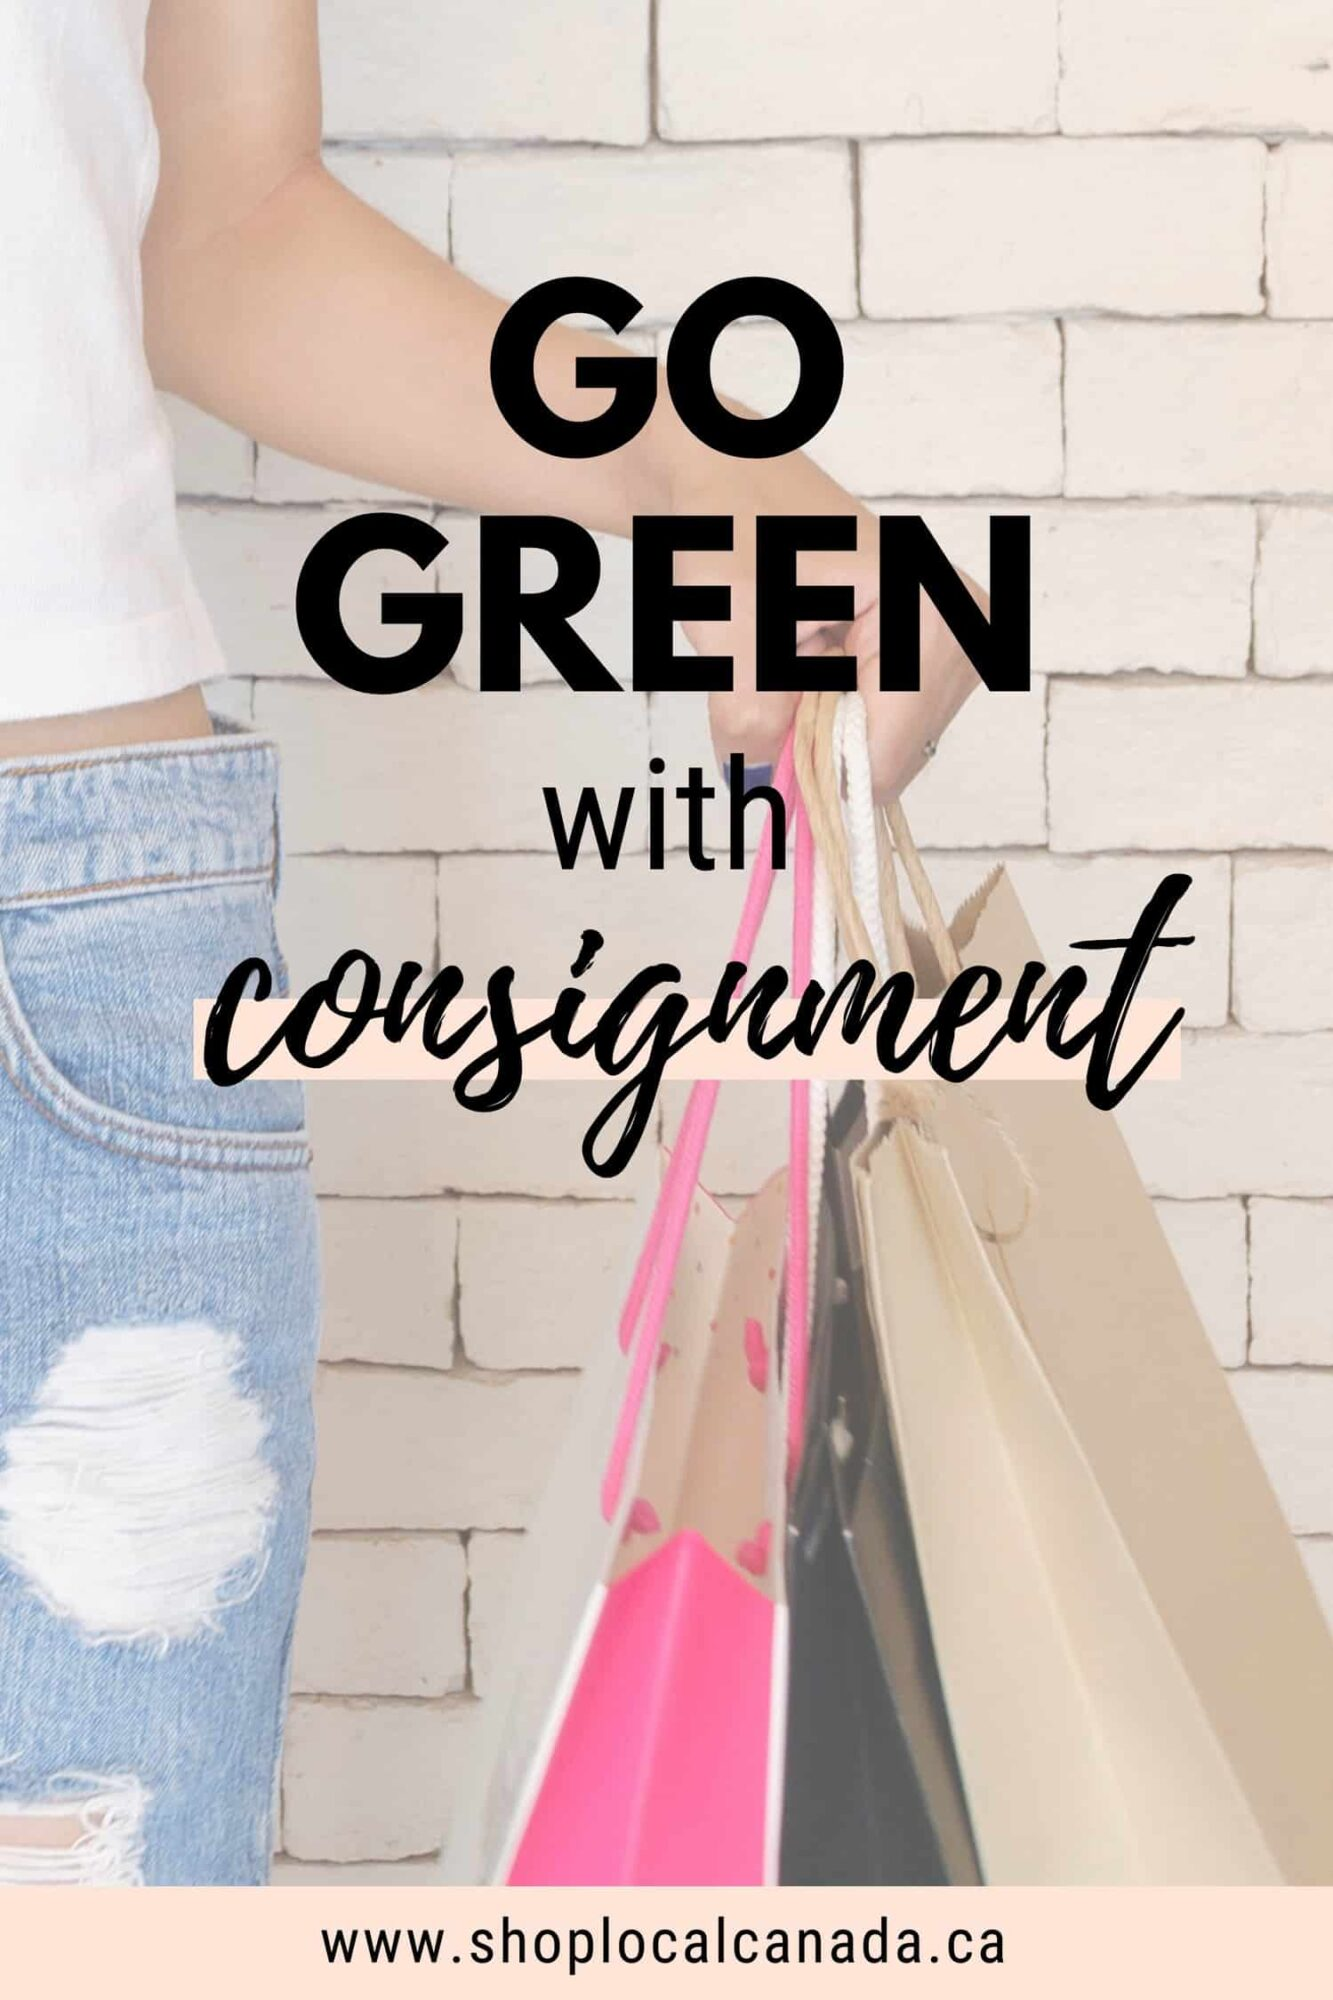 Canadian Consignment, Shop Local Canada, Canadian consignment shops